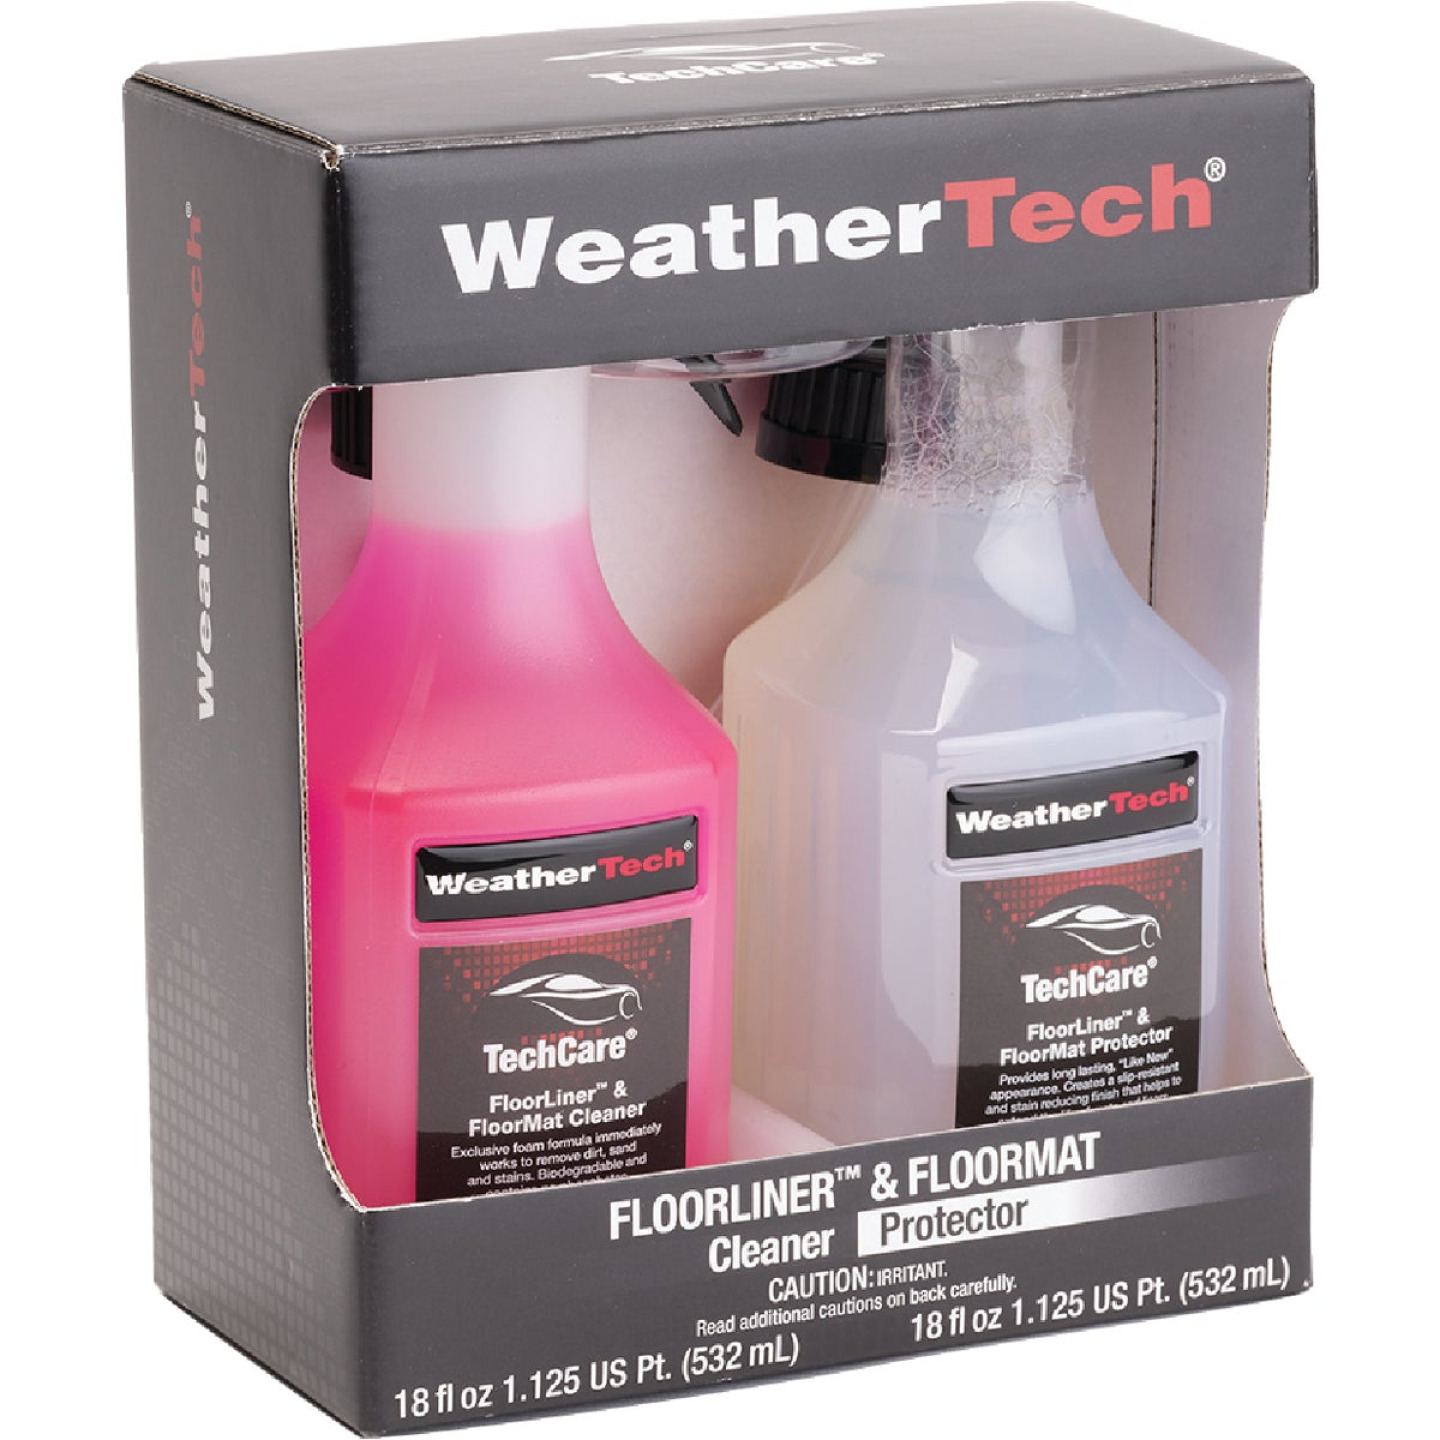 WeatherTech TechCare 18 Oz. Liquid Floorliner & Floormat Auto Interior Cleaner and 18 Oz. Liquid Protector Kit (2-Pack) Image 1